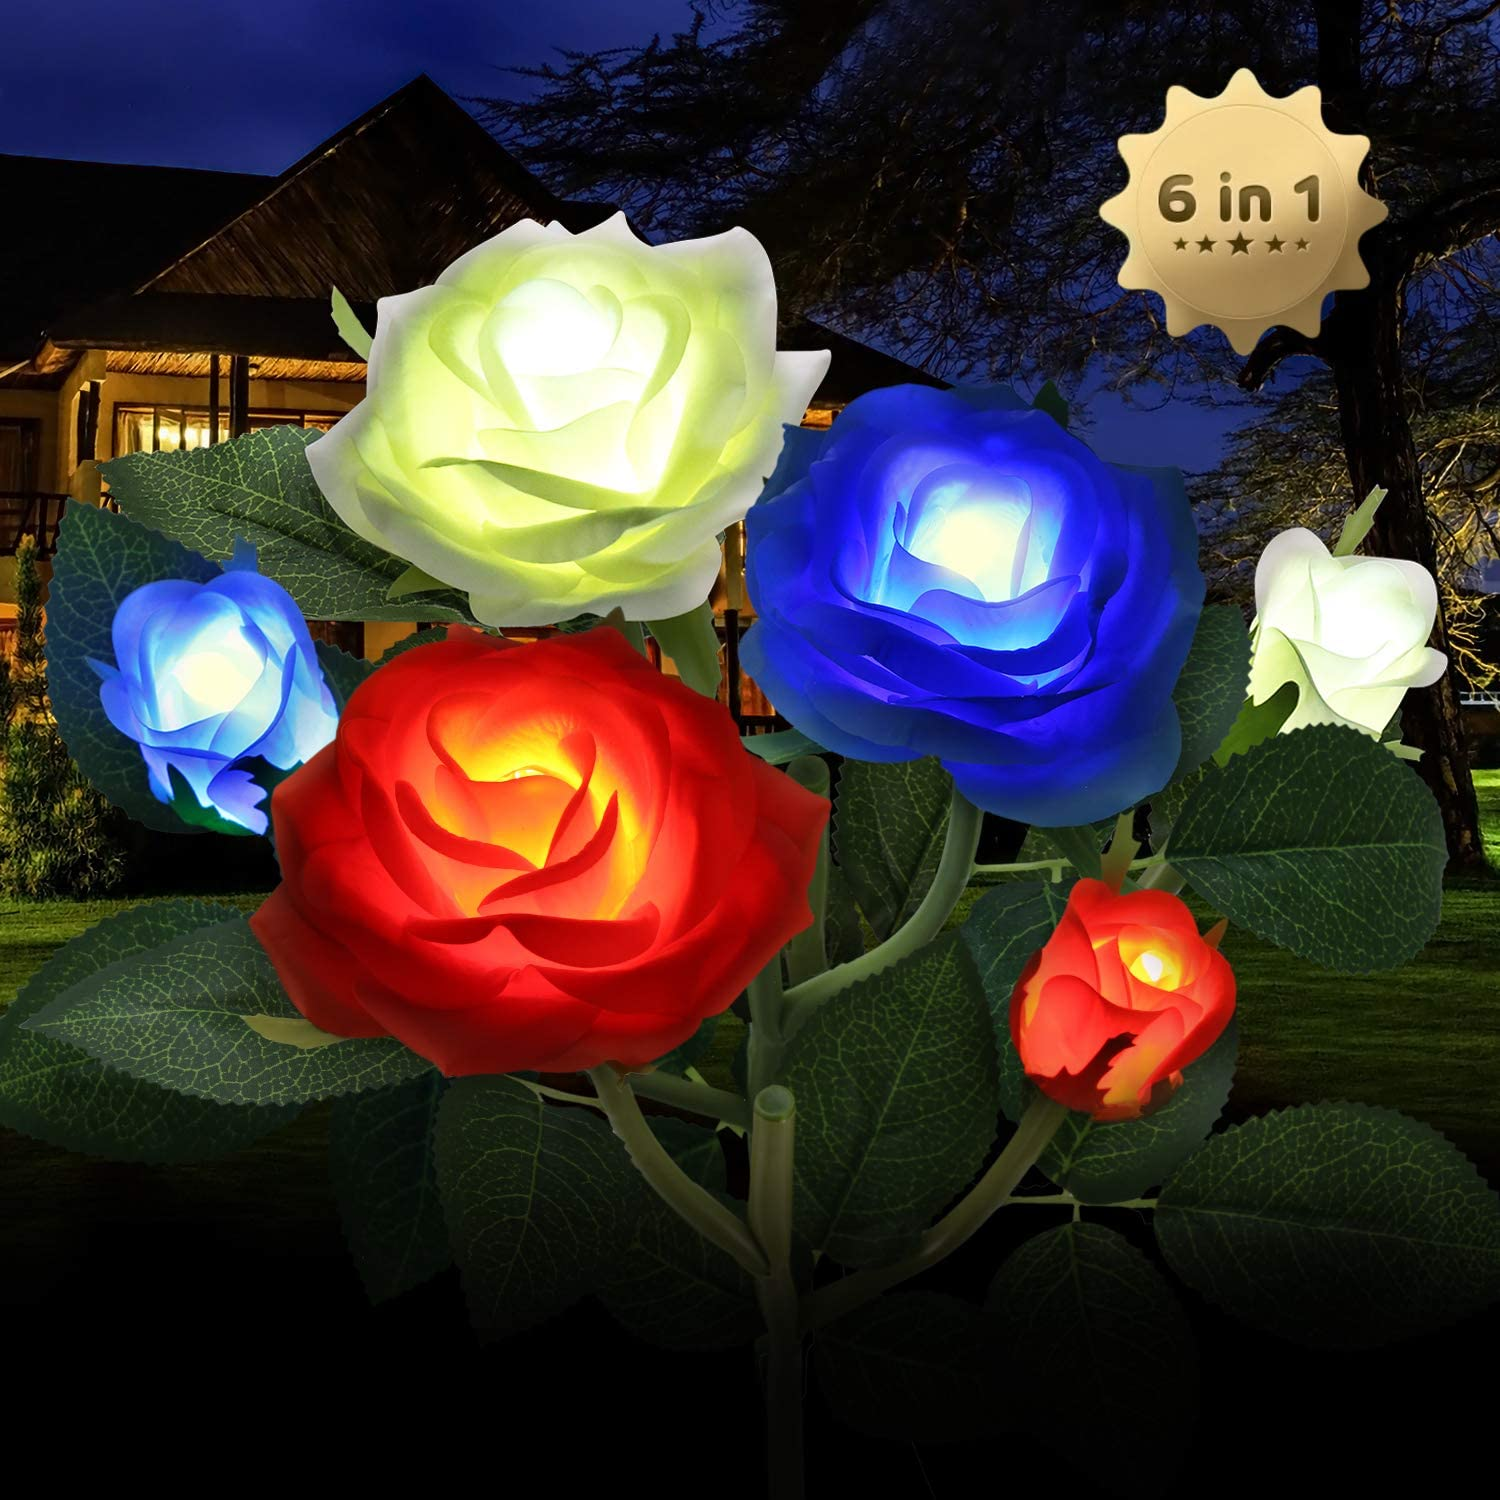 Outdoor Solar Garden Stake Lights,Upgraded LED Solar Powered Light with 6 Rose Flowers, 3 Pack Colorful Waterproof Solar Decorative Lights for Garden, Patio, Backyard (Orange&White&Blue)